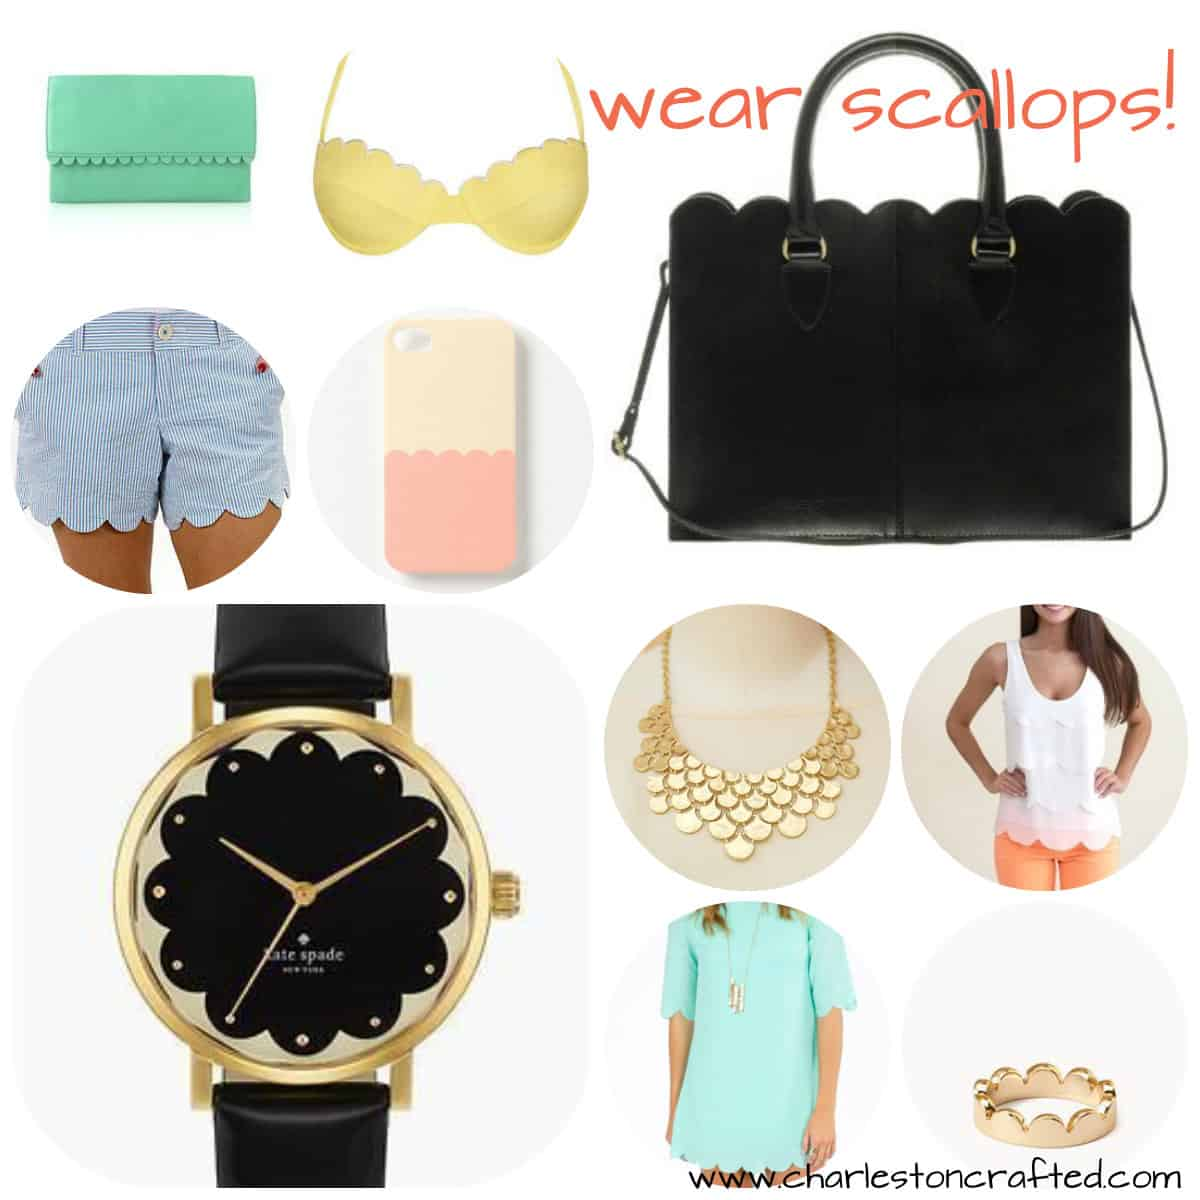 Top Ten Pins- All Things Scalloped!